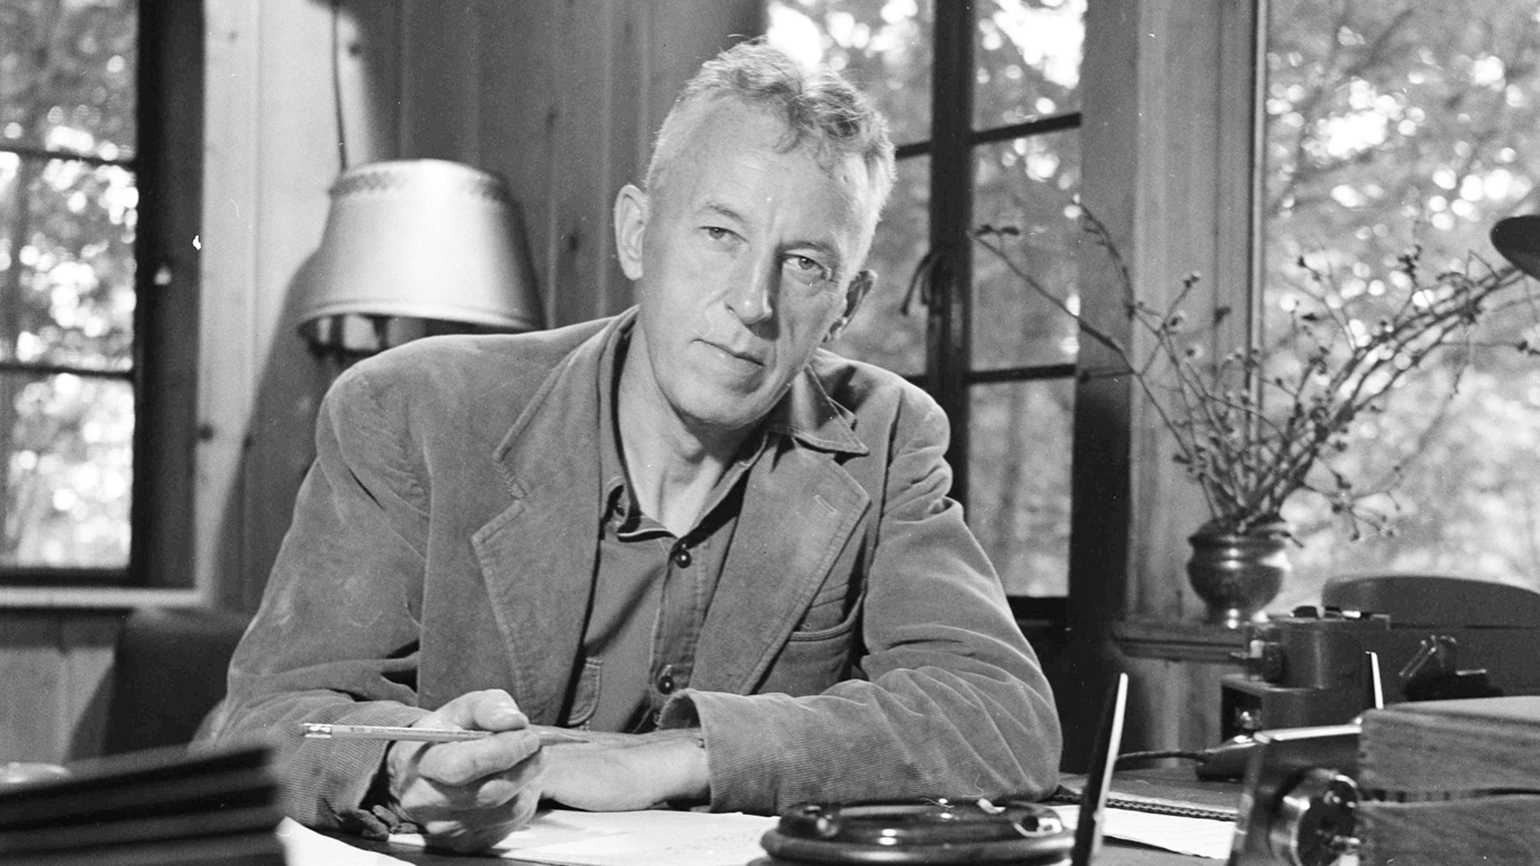 Bill Wilson, co-founder of Alcoholics Anonymous